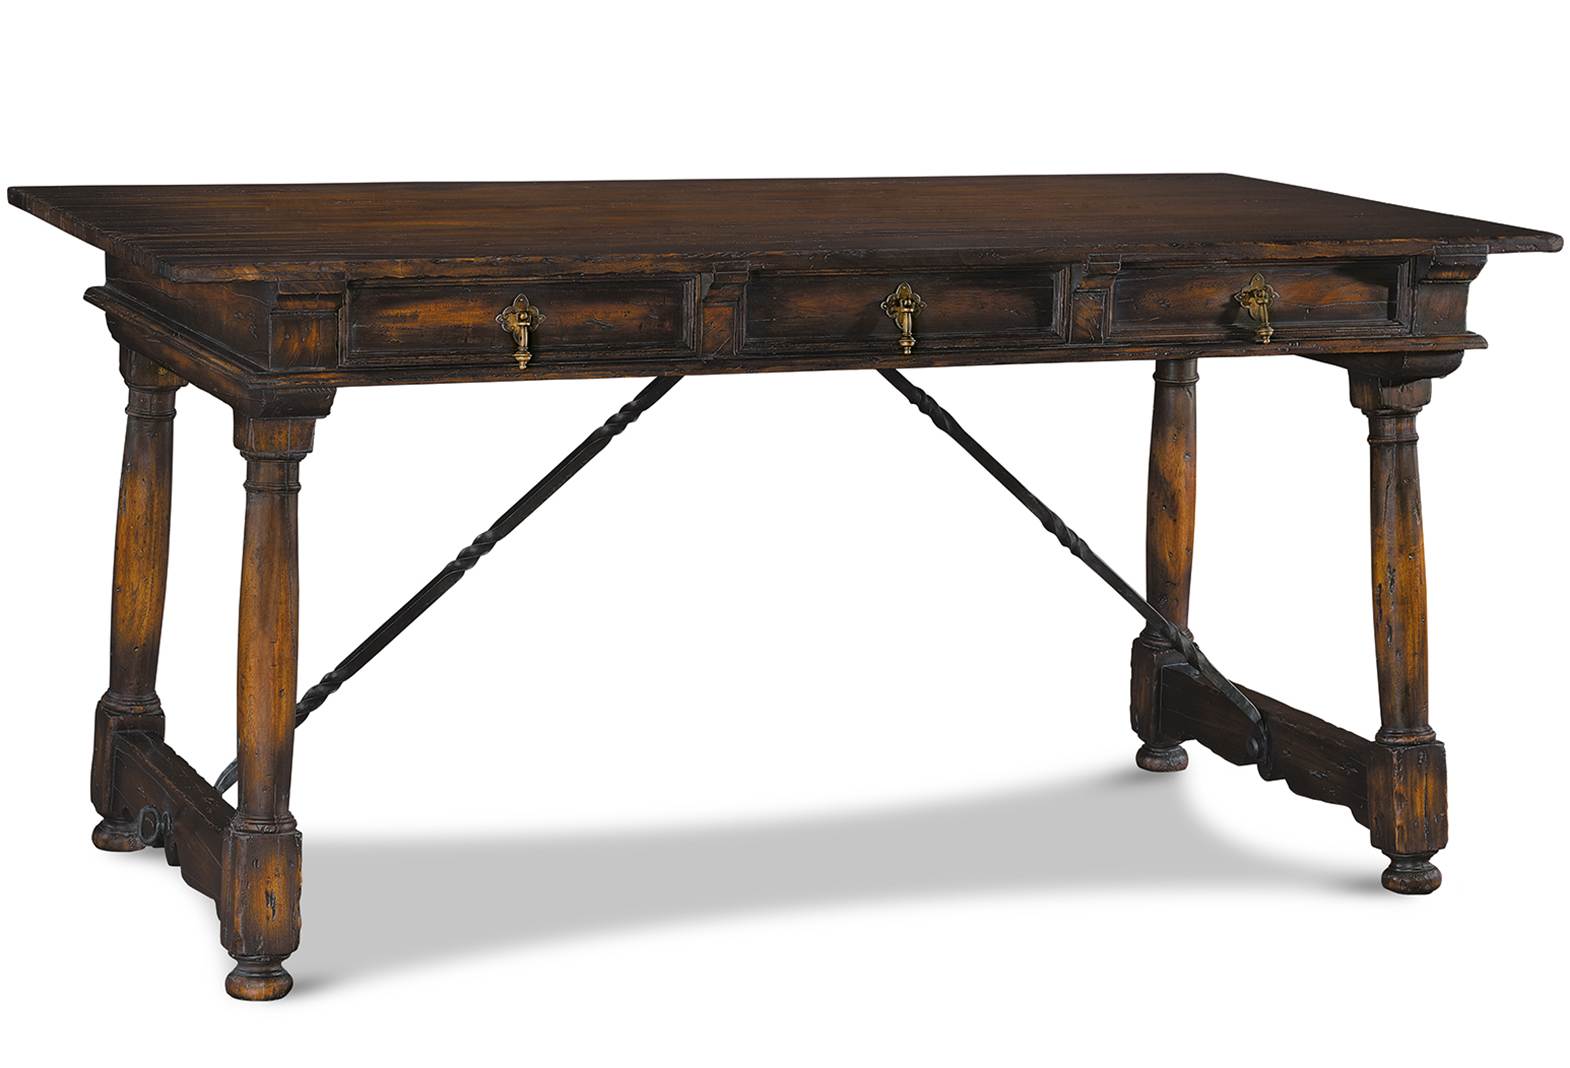 SPANISH WRITING TABLE